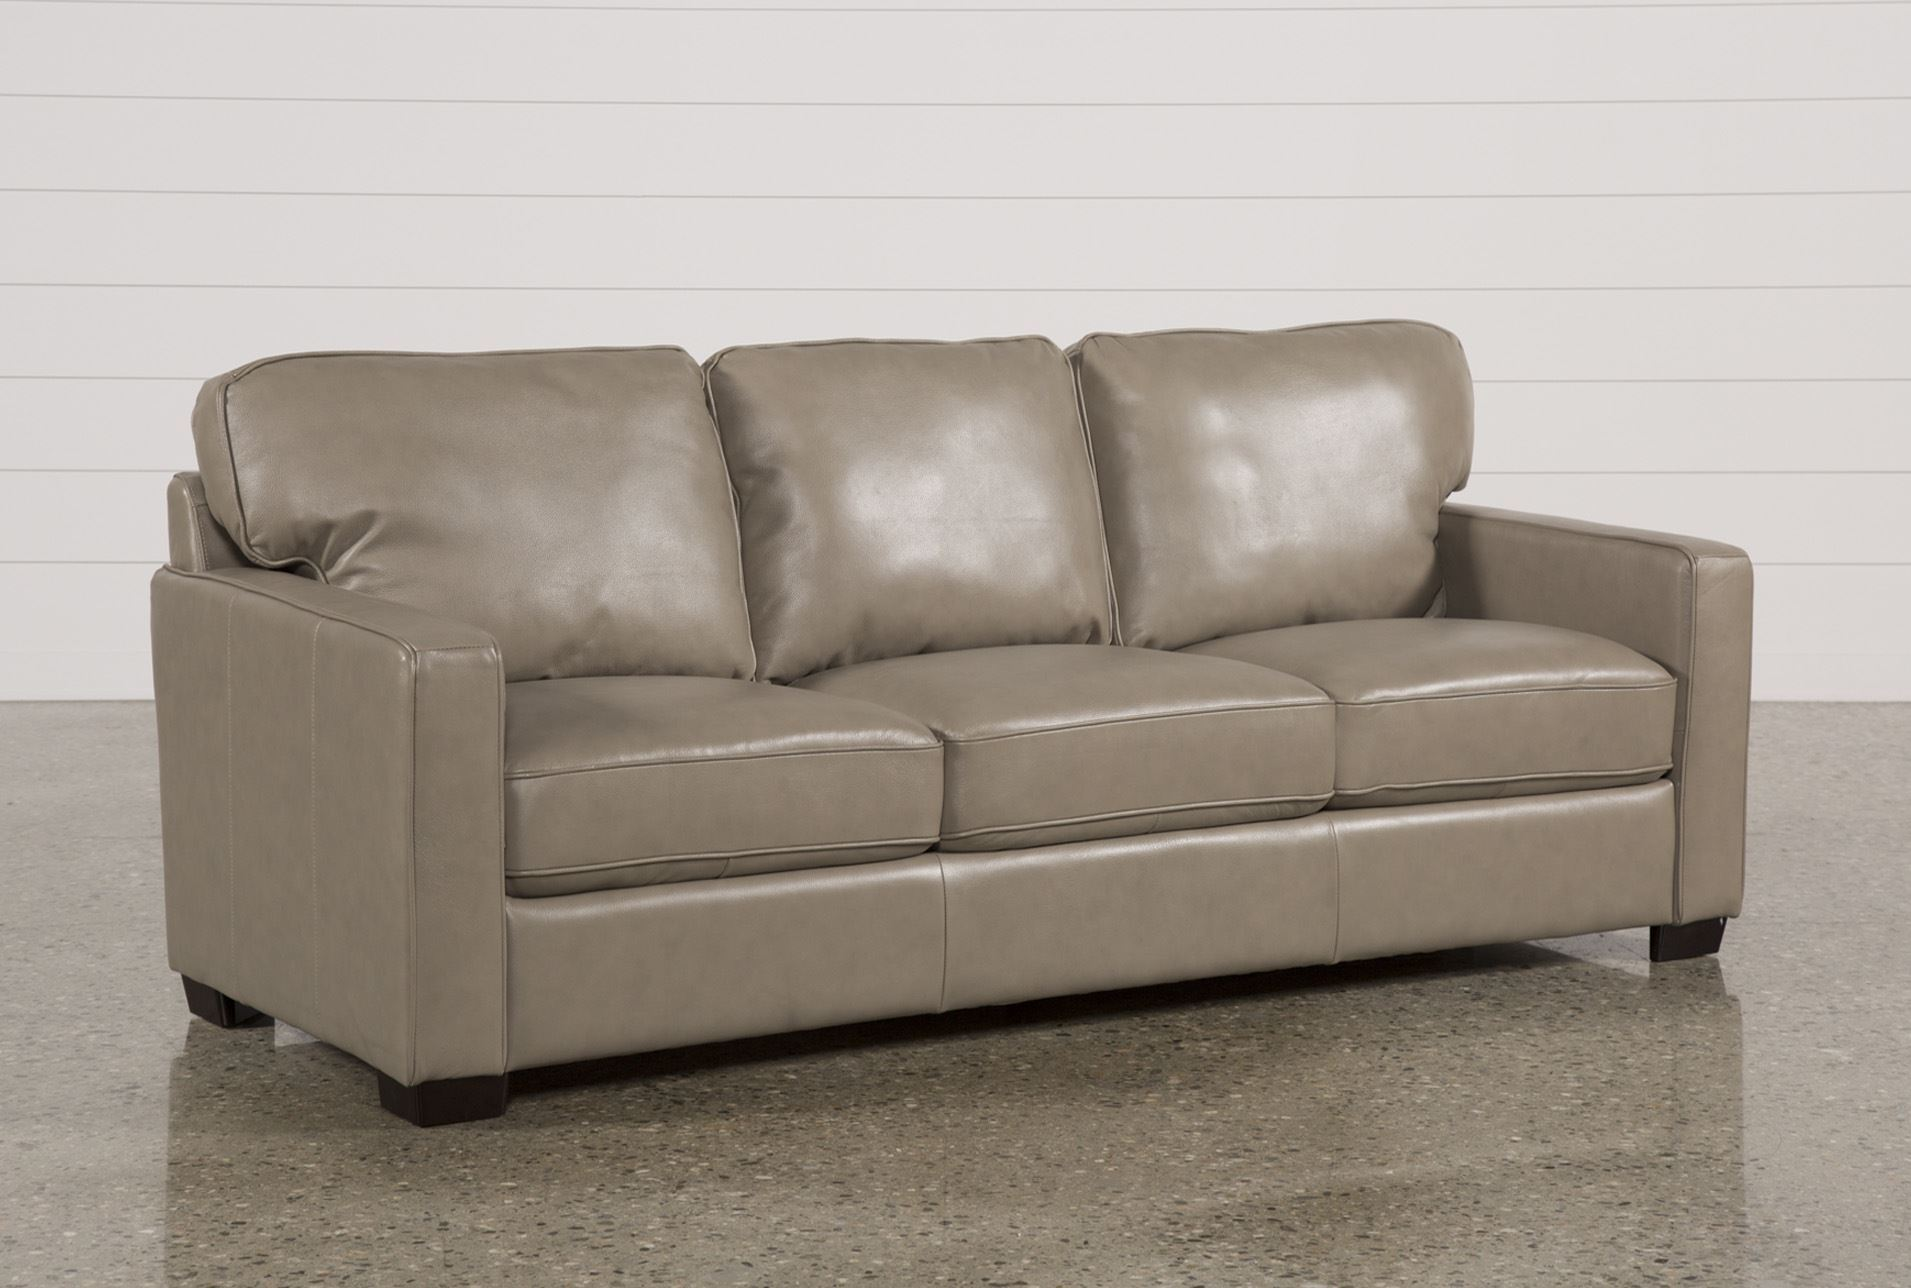 Phenomenal Leather Sofa How To Prevent Your Sofas Sagging 12 Couches Dailytribune Chair Design For Home Dailytribuneorg